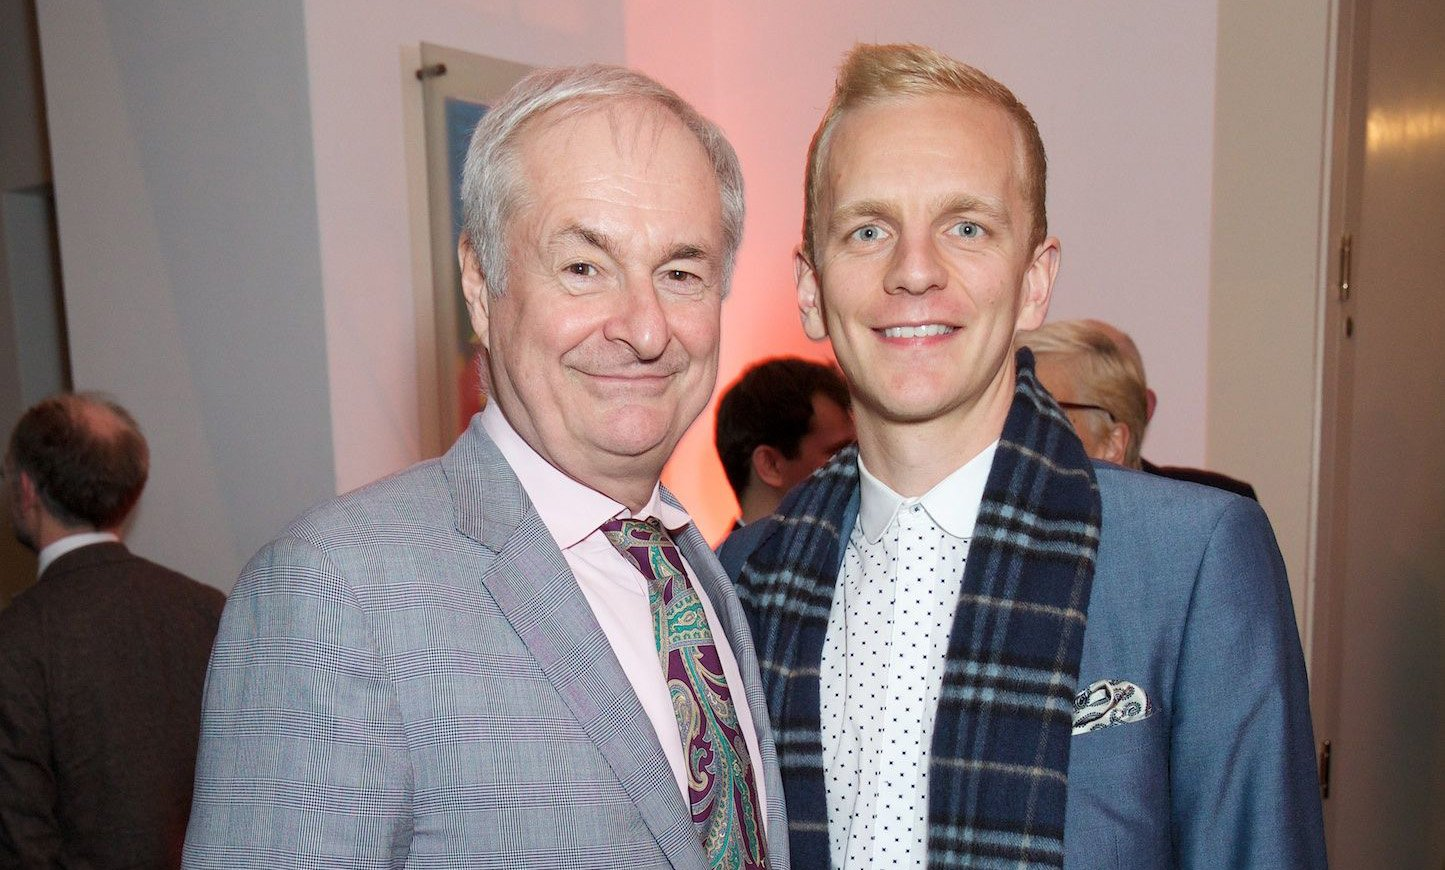 Former Radio 1 presenter Paul Gambaccini wins payout from CPS over false abuse claims